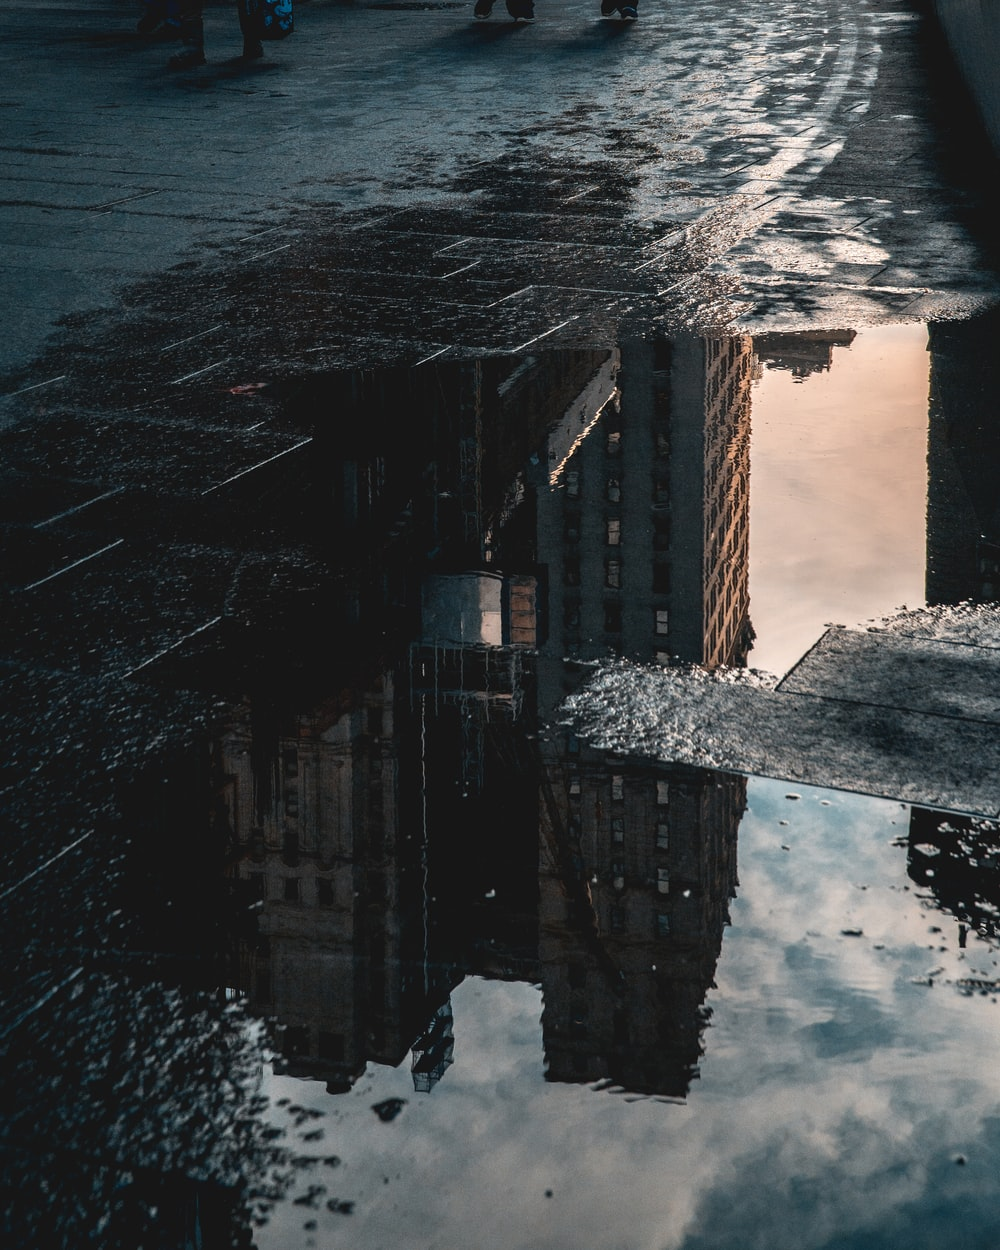 reflection photo of high-rise building